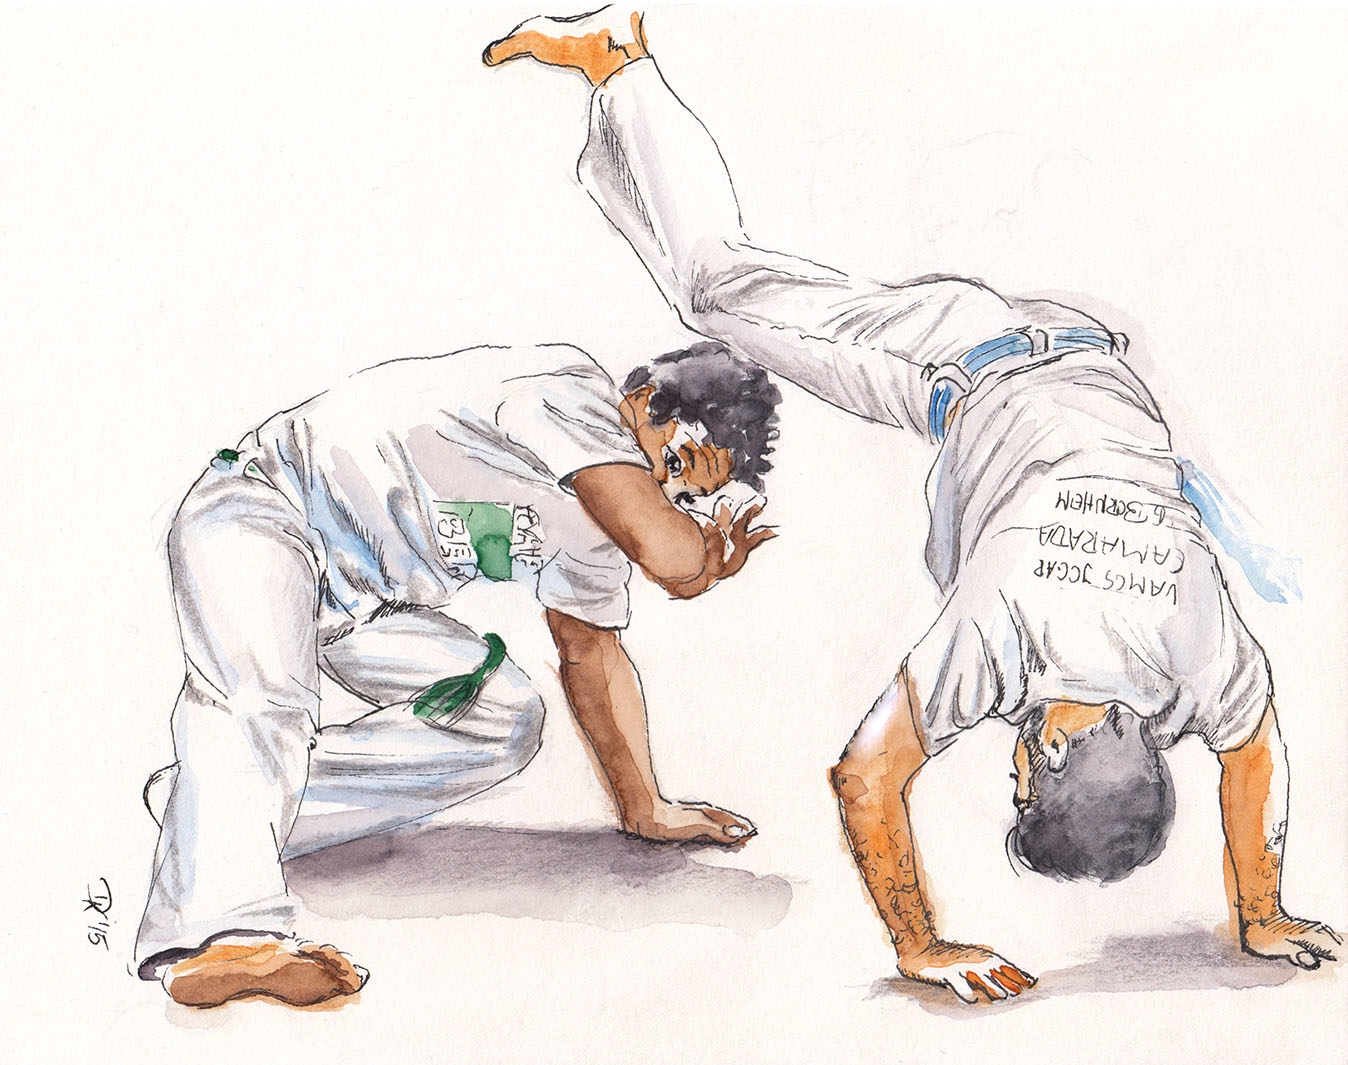 capoeira moves na roda - watercolor - dannyknebel | ello